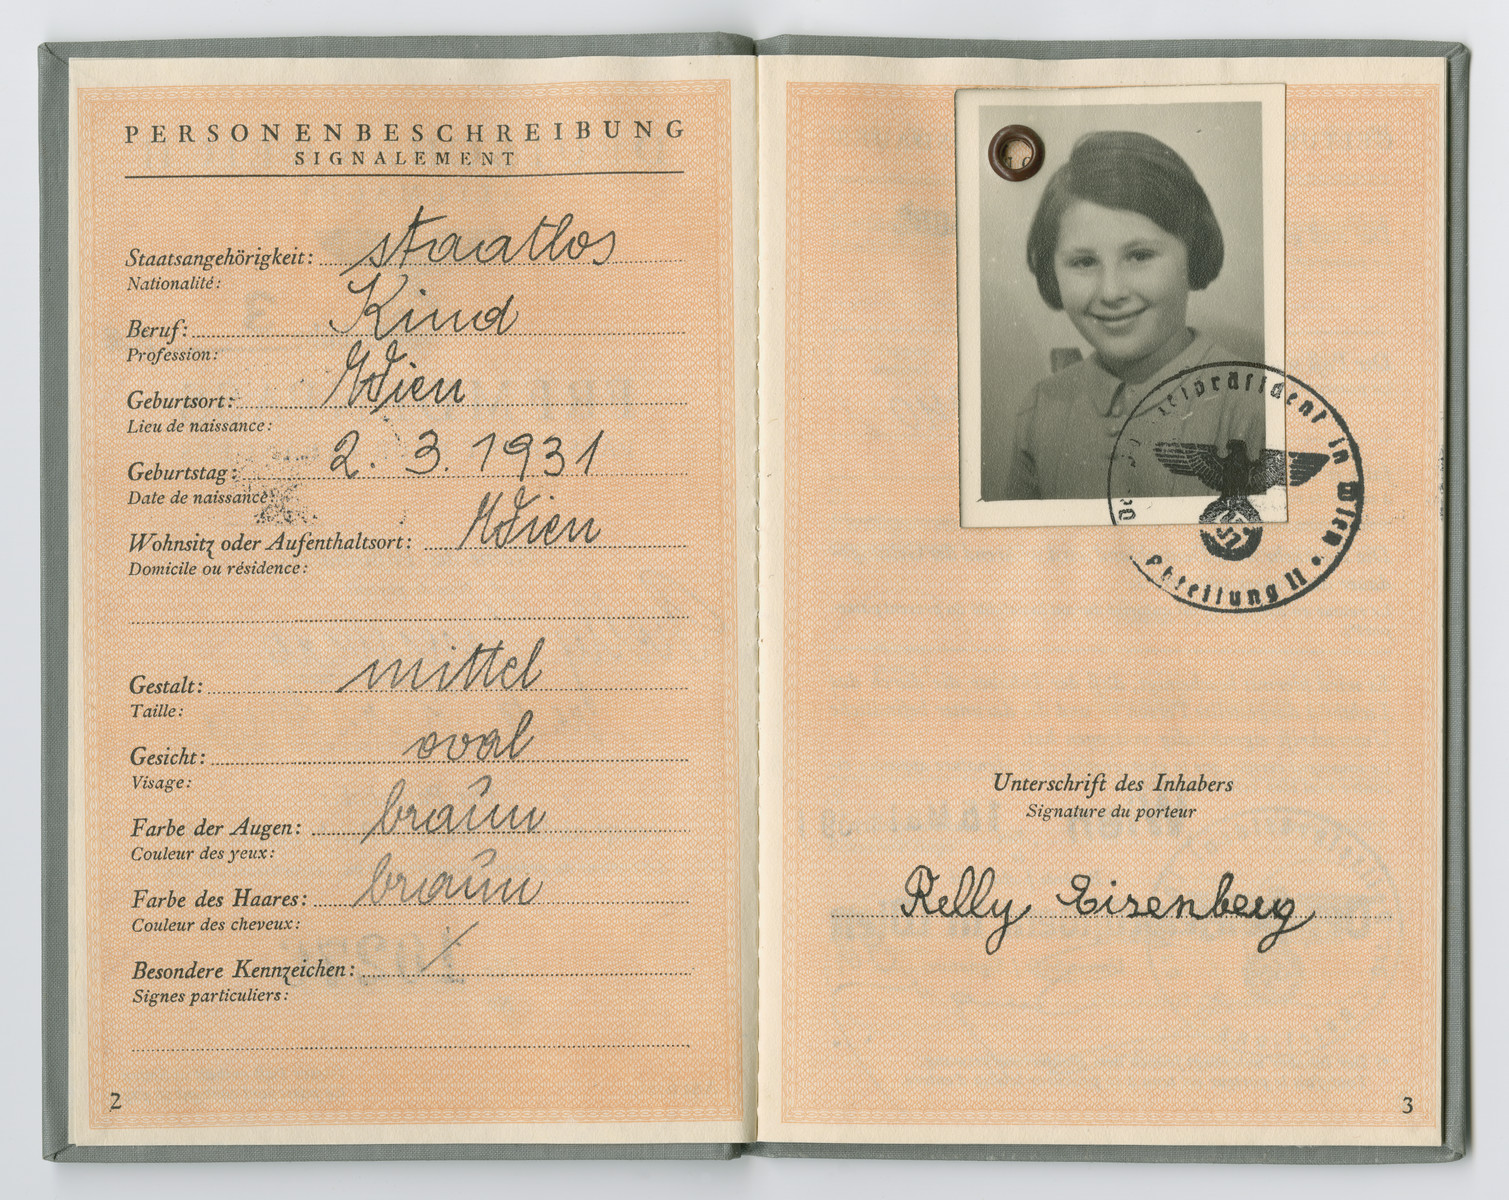 Identification papers issued to Relly Eisenberg stating she was born in Vienna on March 2, 1931 but is officially stateless.